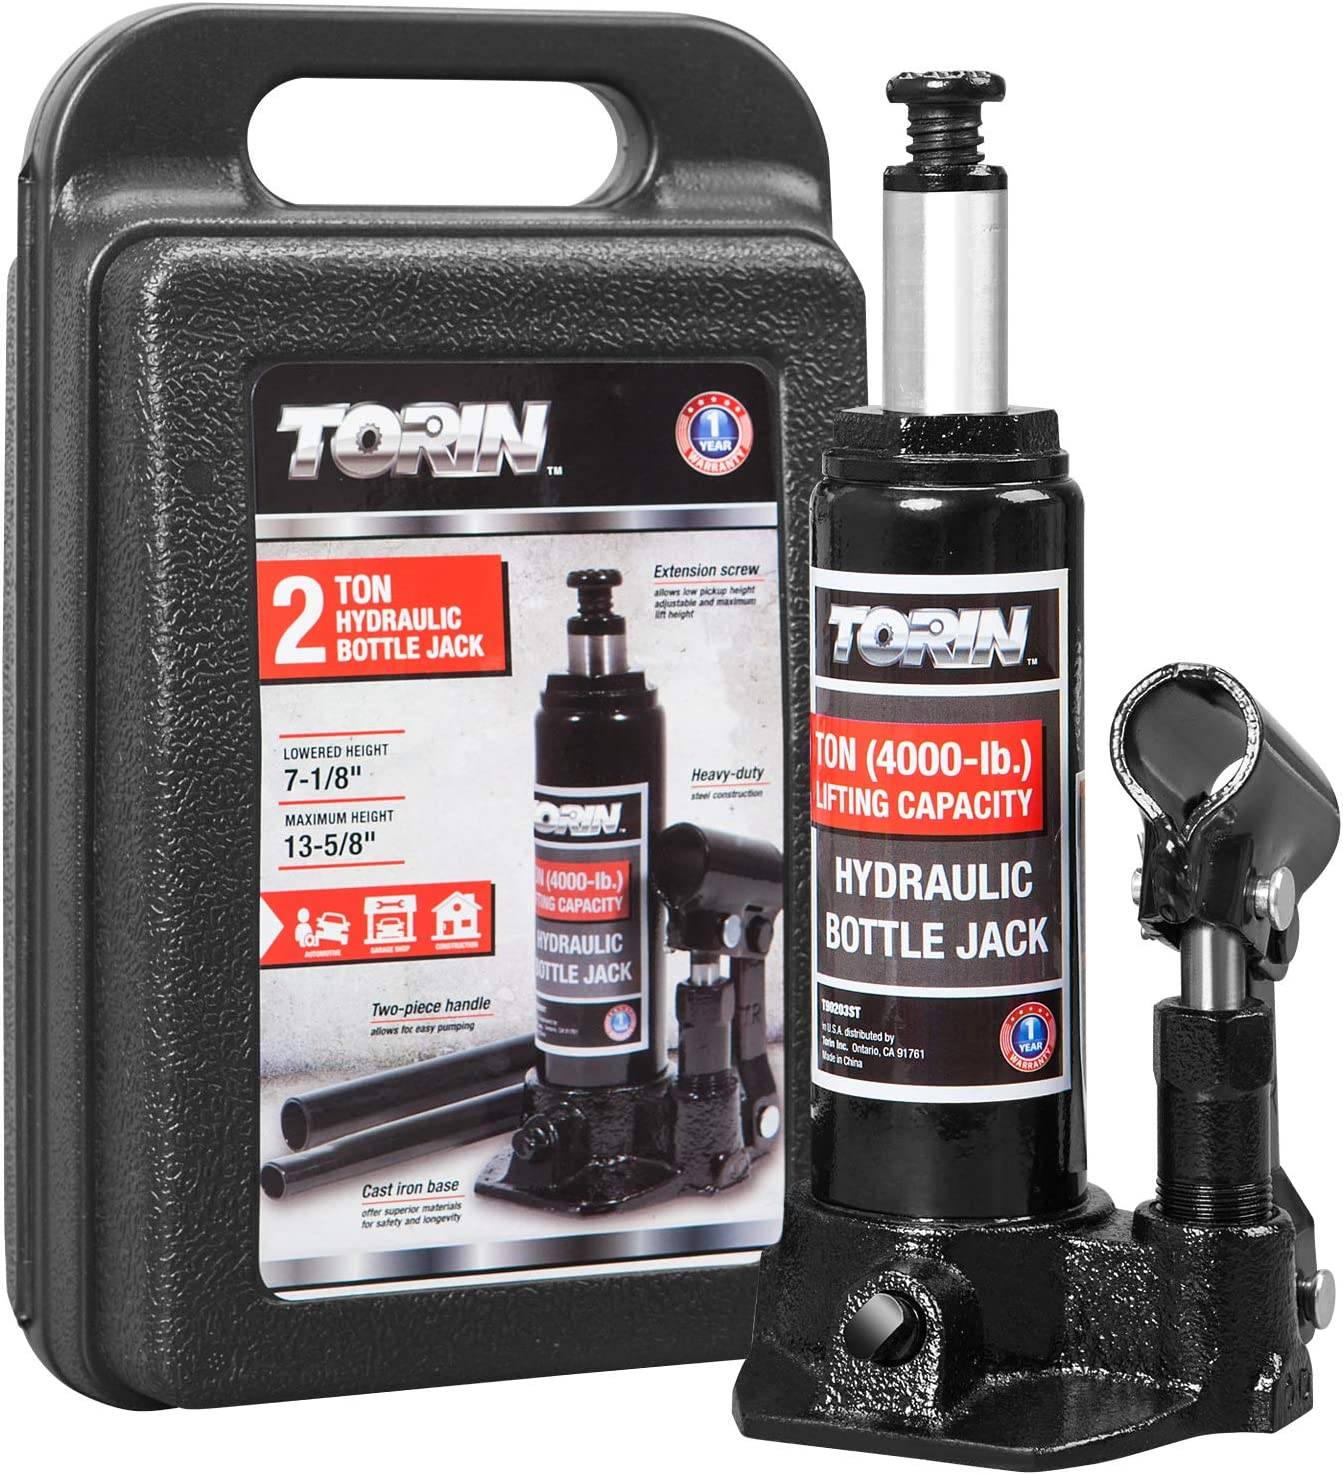 Torin Hydraulic Bottle Jack with Carrying Case